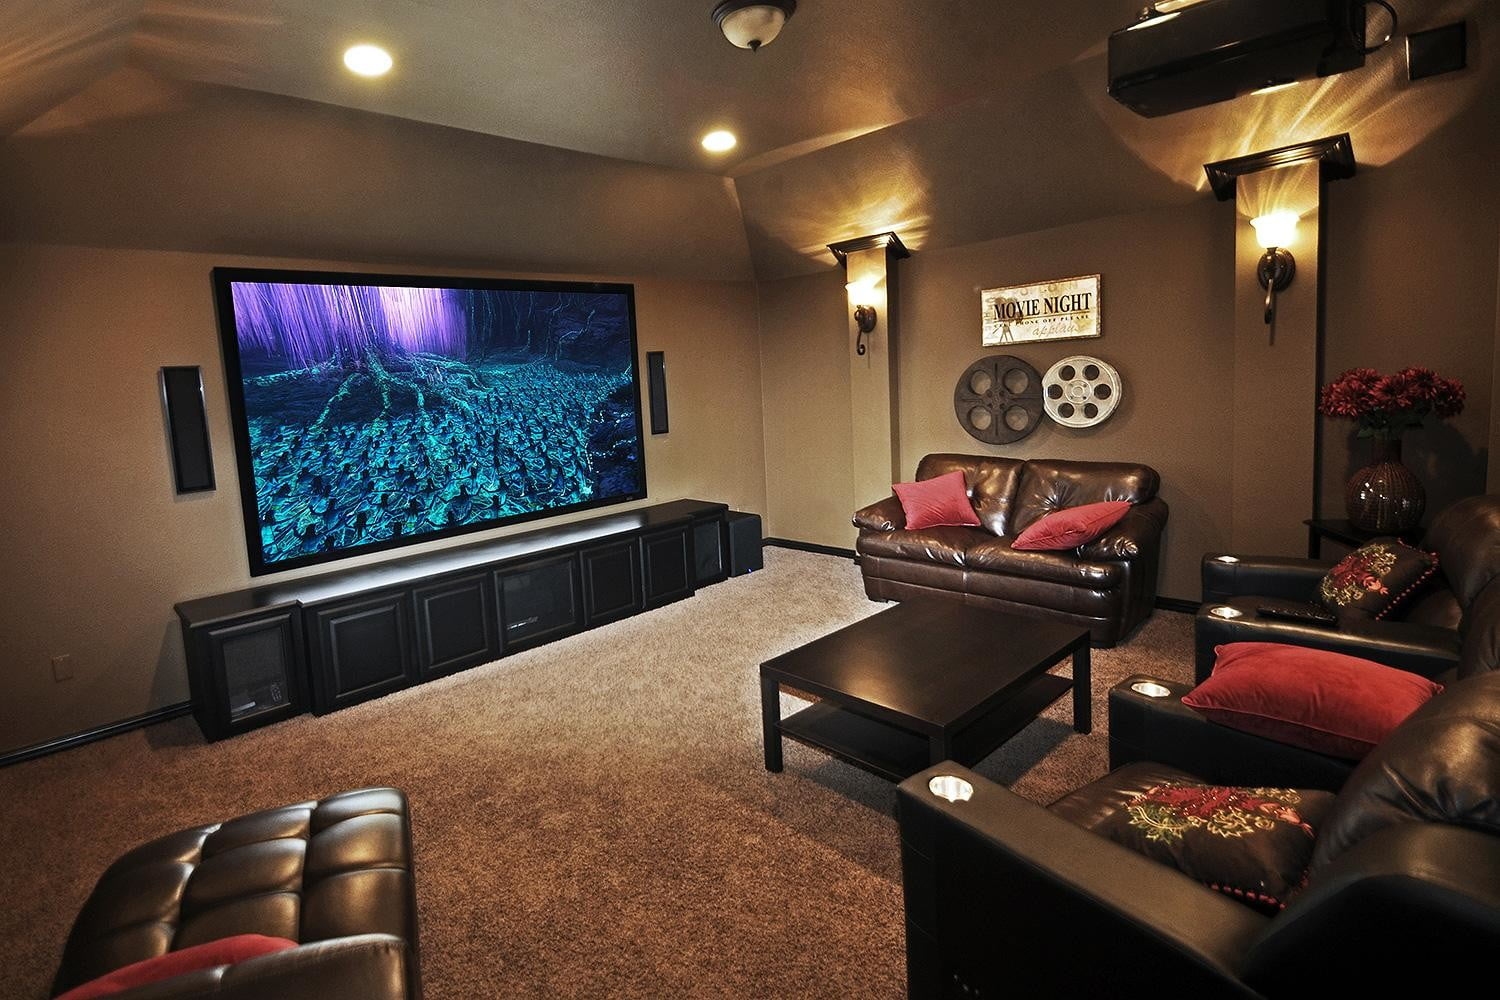 how to build a 3d home theater for 3000 digital trends